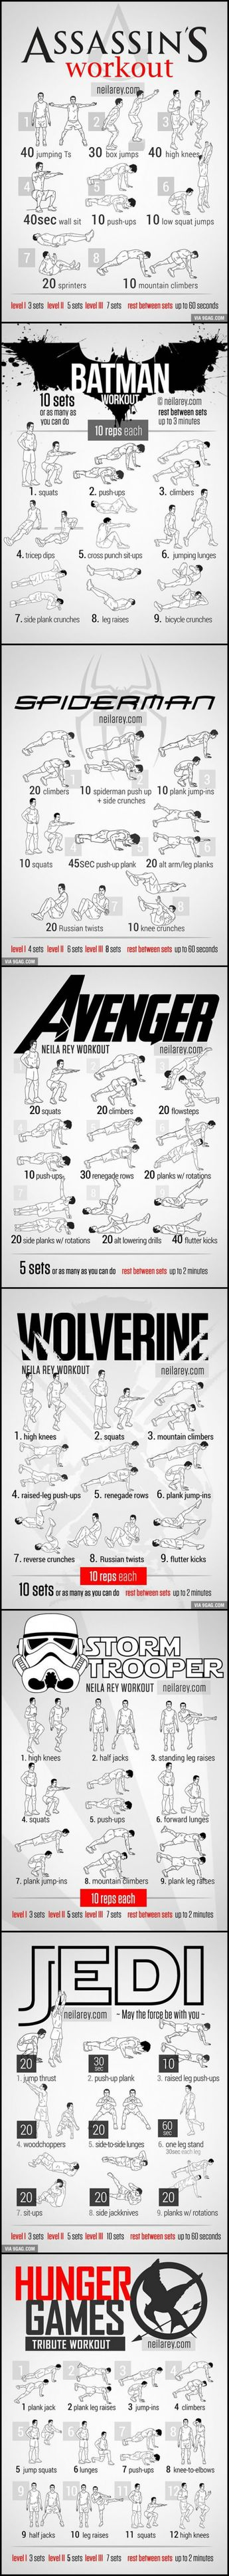 Workout for Assassin, Batman, Spiderman, Avenger, Wolverine... if you don't know how consult a specialist :D